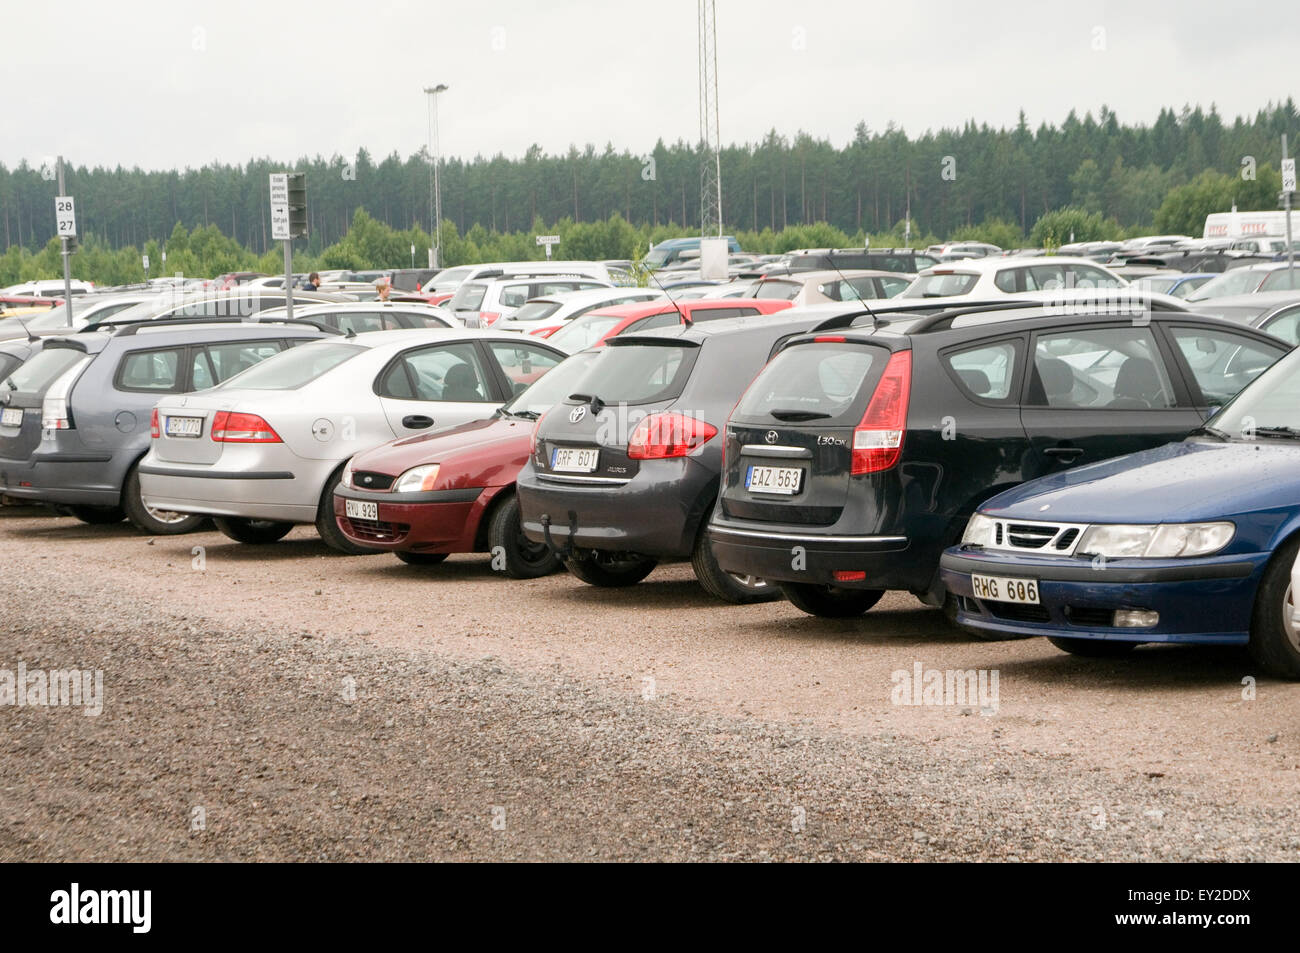 Car Parking Airport Stock Photos Car Parking Airport Stock Images